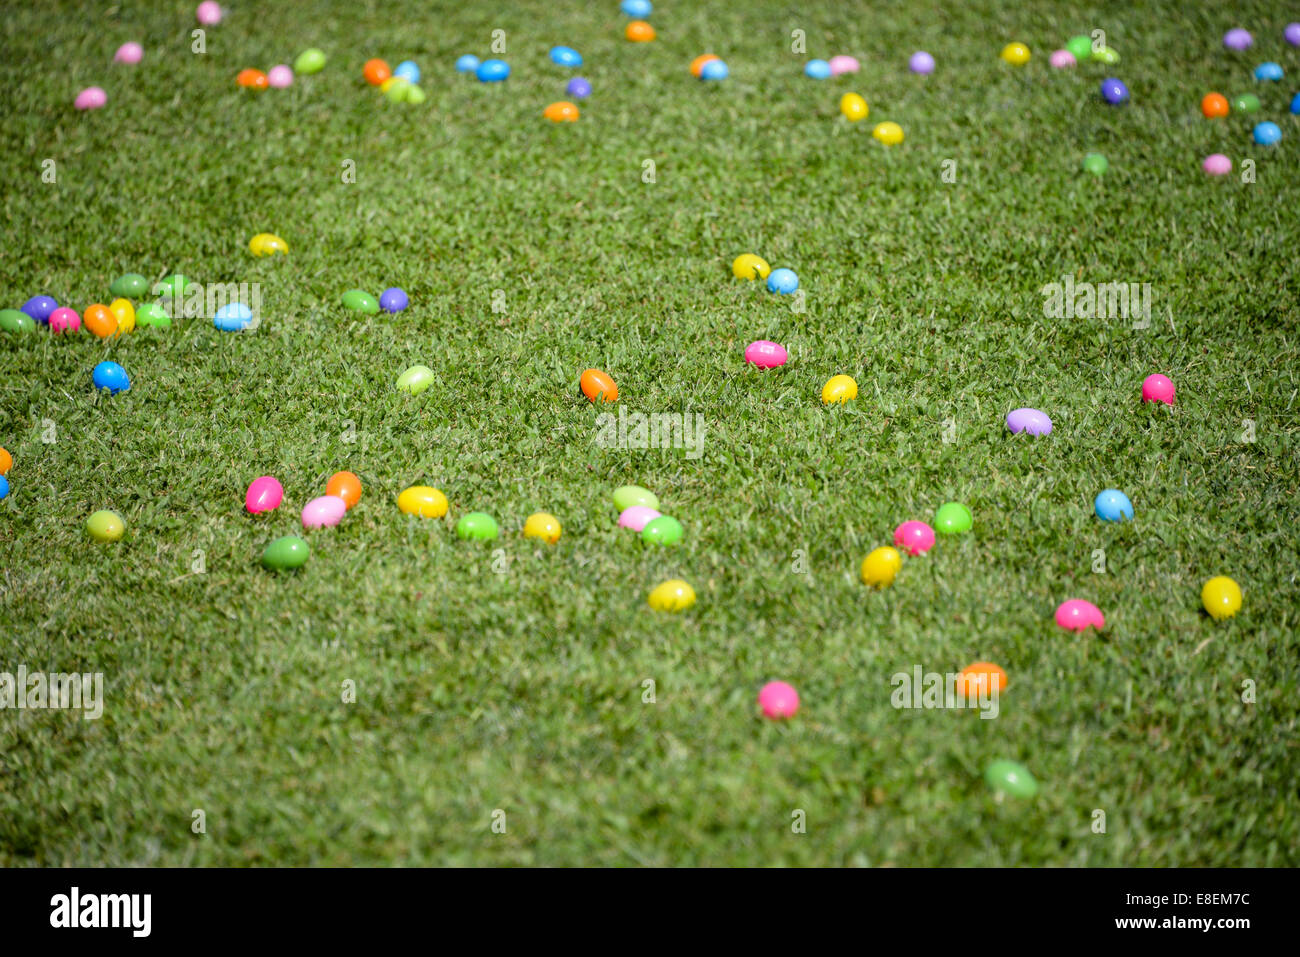 Colorful Plastic Easter Eggs In Green Grass Field Egg Hunt Rush Hunting Different Colors